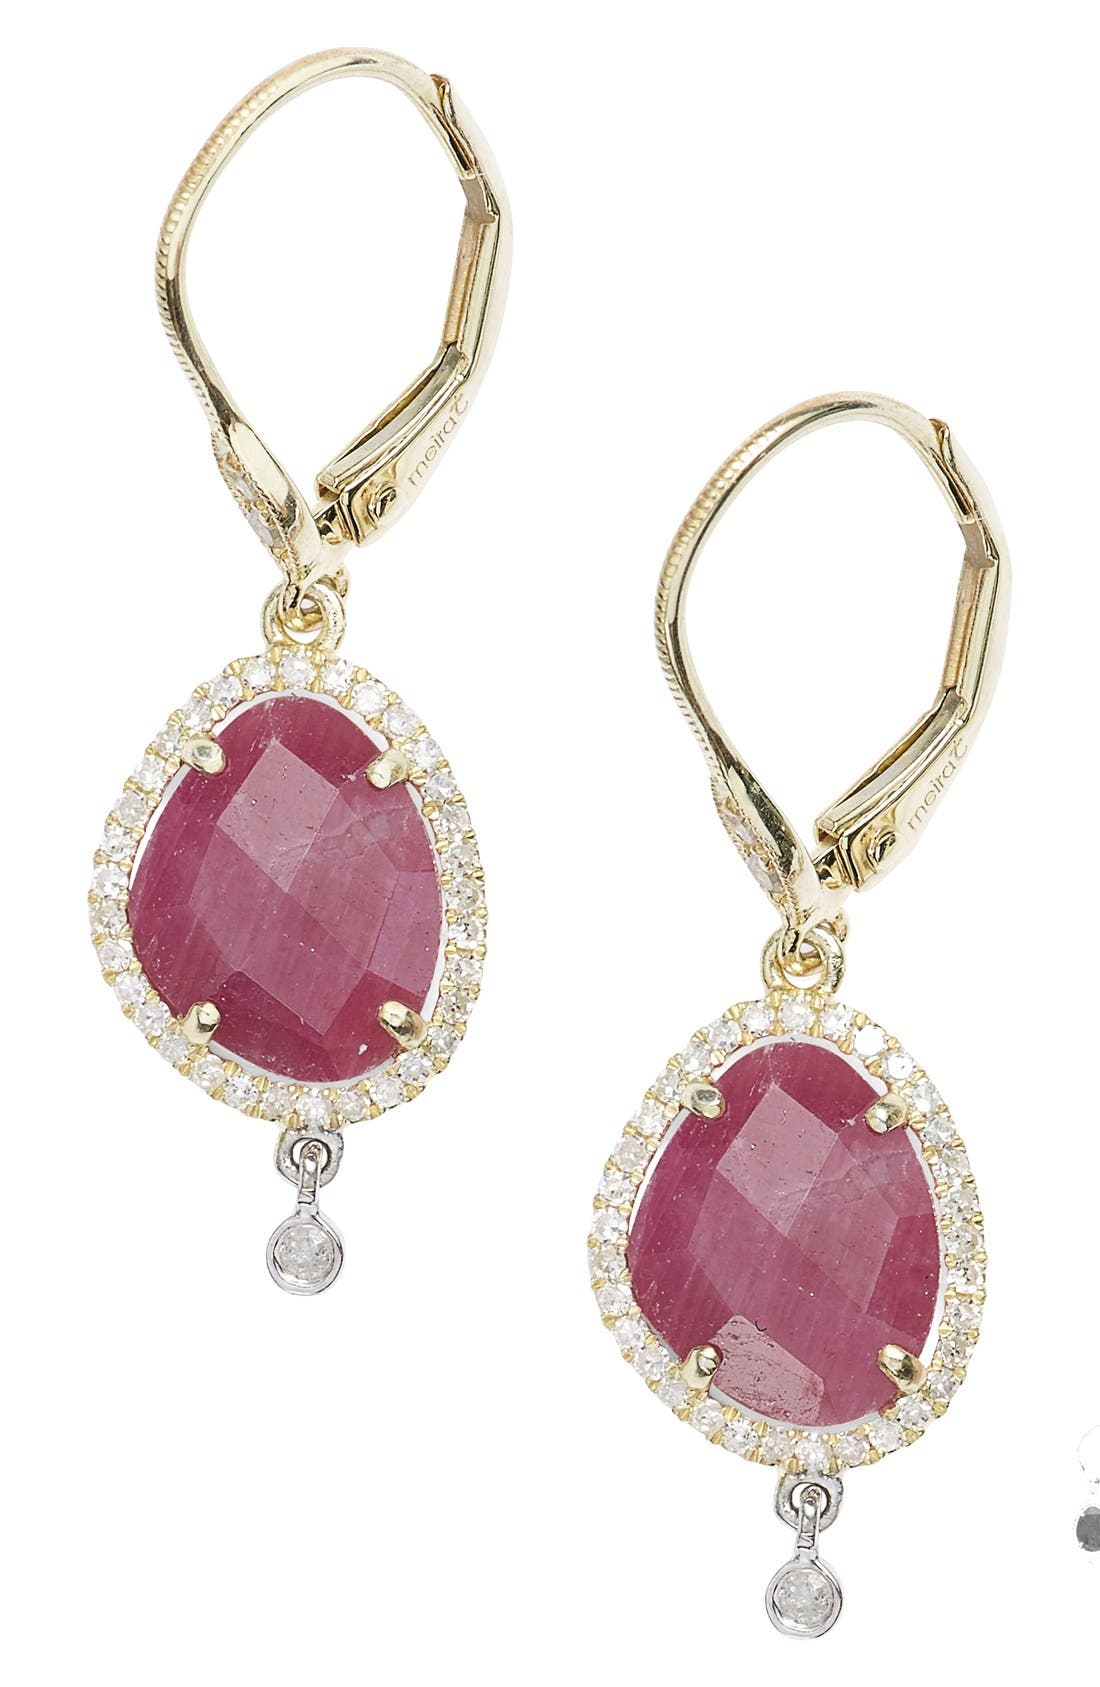 Diamond & Semiprecious Stone Drop Earrings,                             Main thumbnail 1, color,                             Ruby